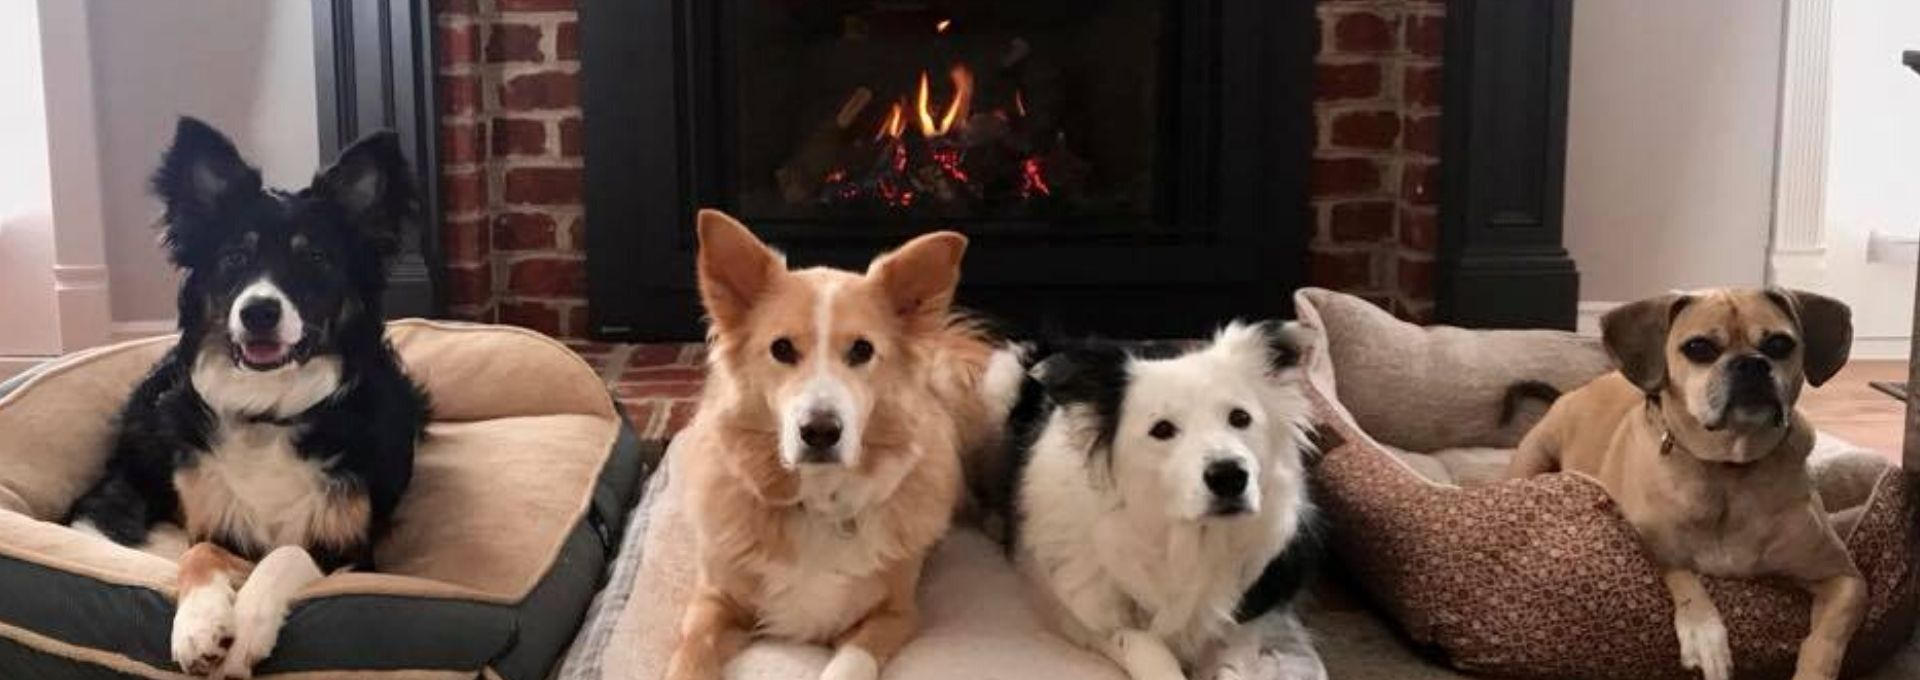 12 Pictures Proving Pets Love Fireplaces